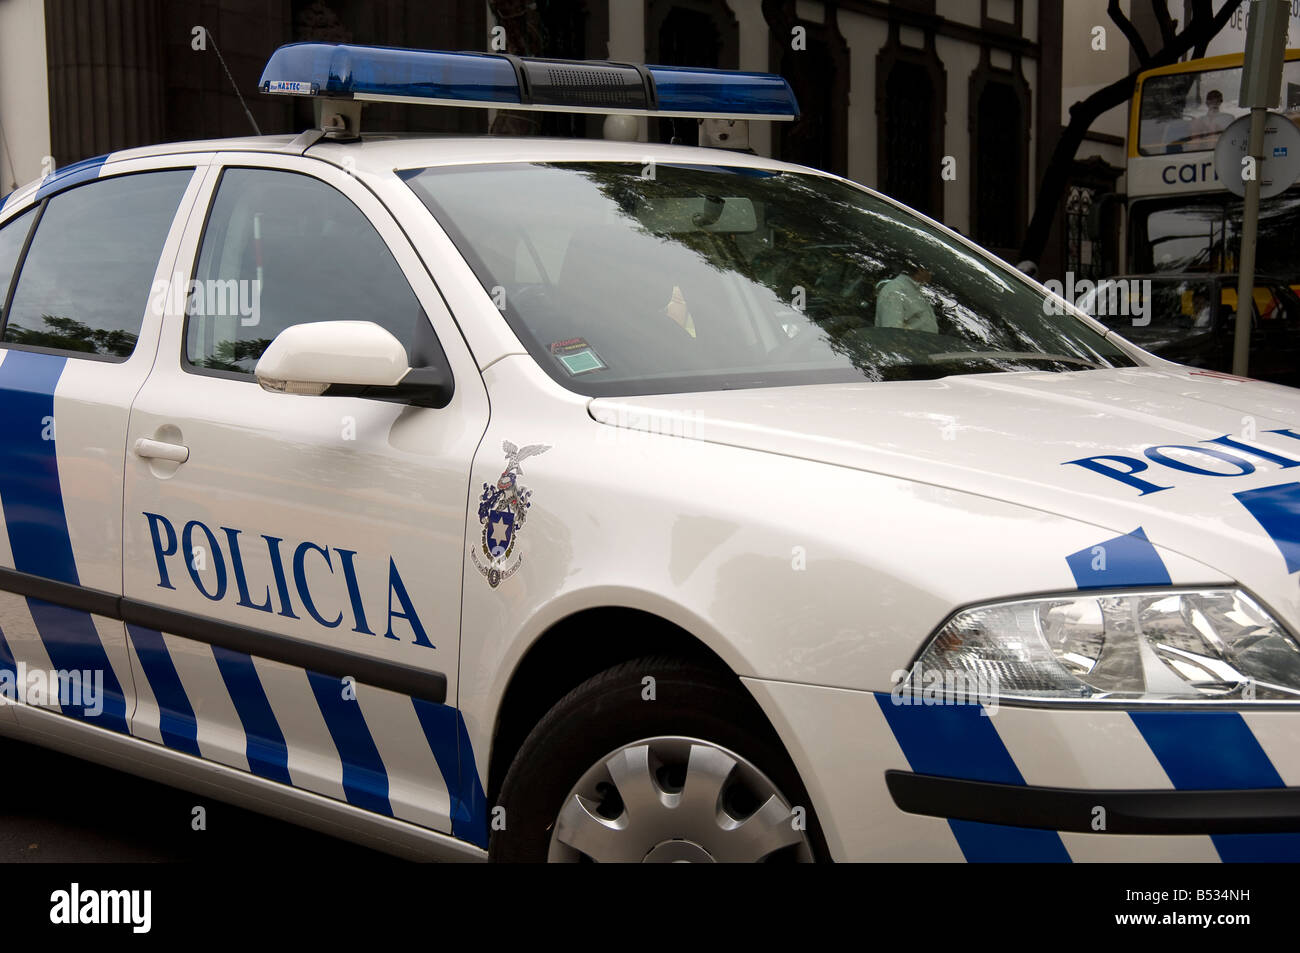 skoda police car funchal madeira portugal eu europe stock photo royalty free image 20353245. Black Bedroom Furniture Sets. Home Design Ideas